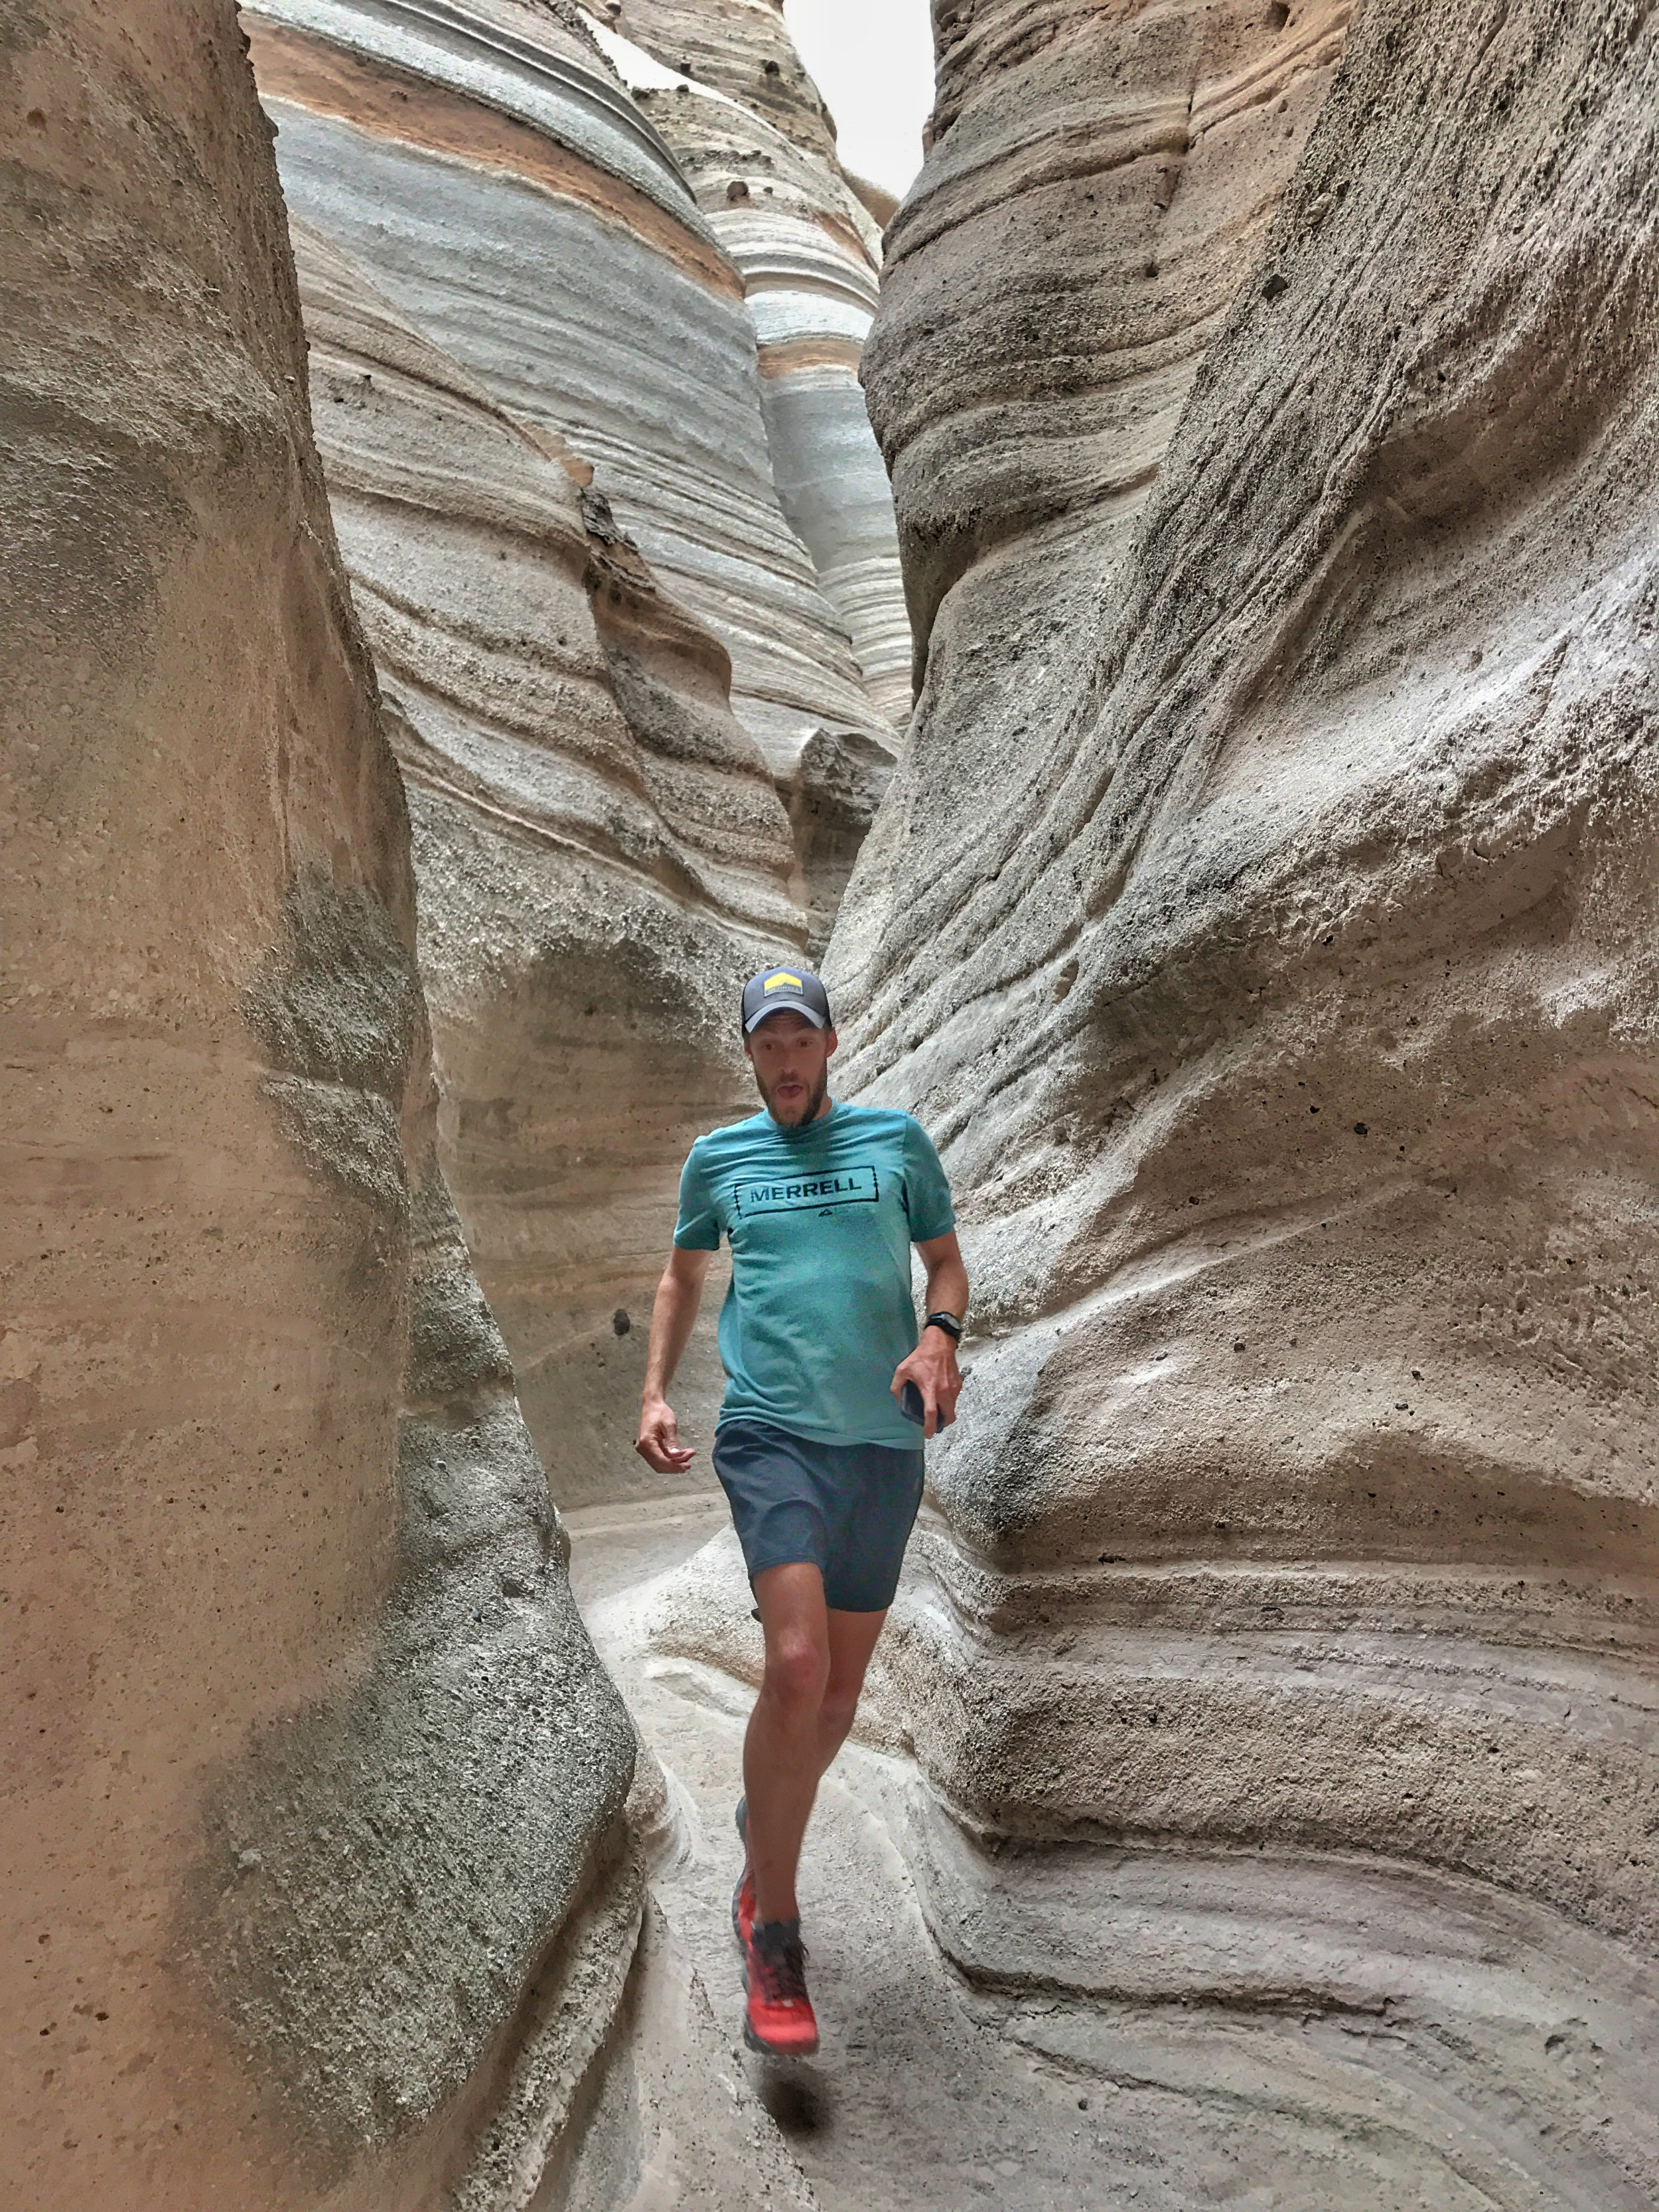 Kasha Katuwe Tent Rocks National Monument was the most surprising to us! Such a cool place, very quiet, tucked into the middle of no where New Mexico. Rock formations and slot canyons. We were so glad we went out of the way to see this one (although there was no Junior Ranger program).